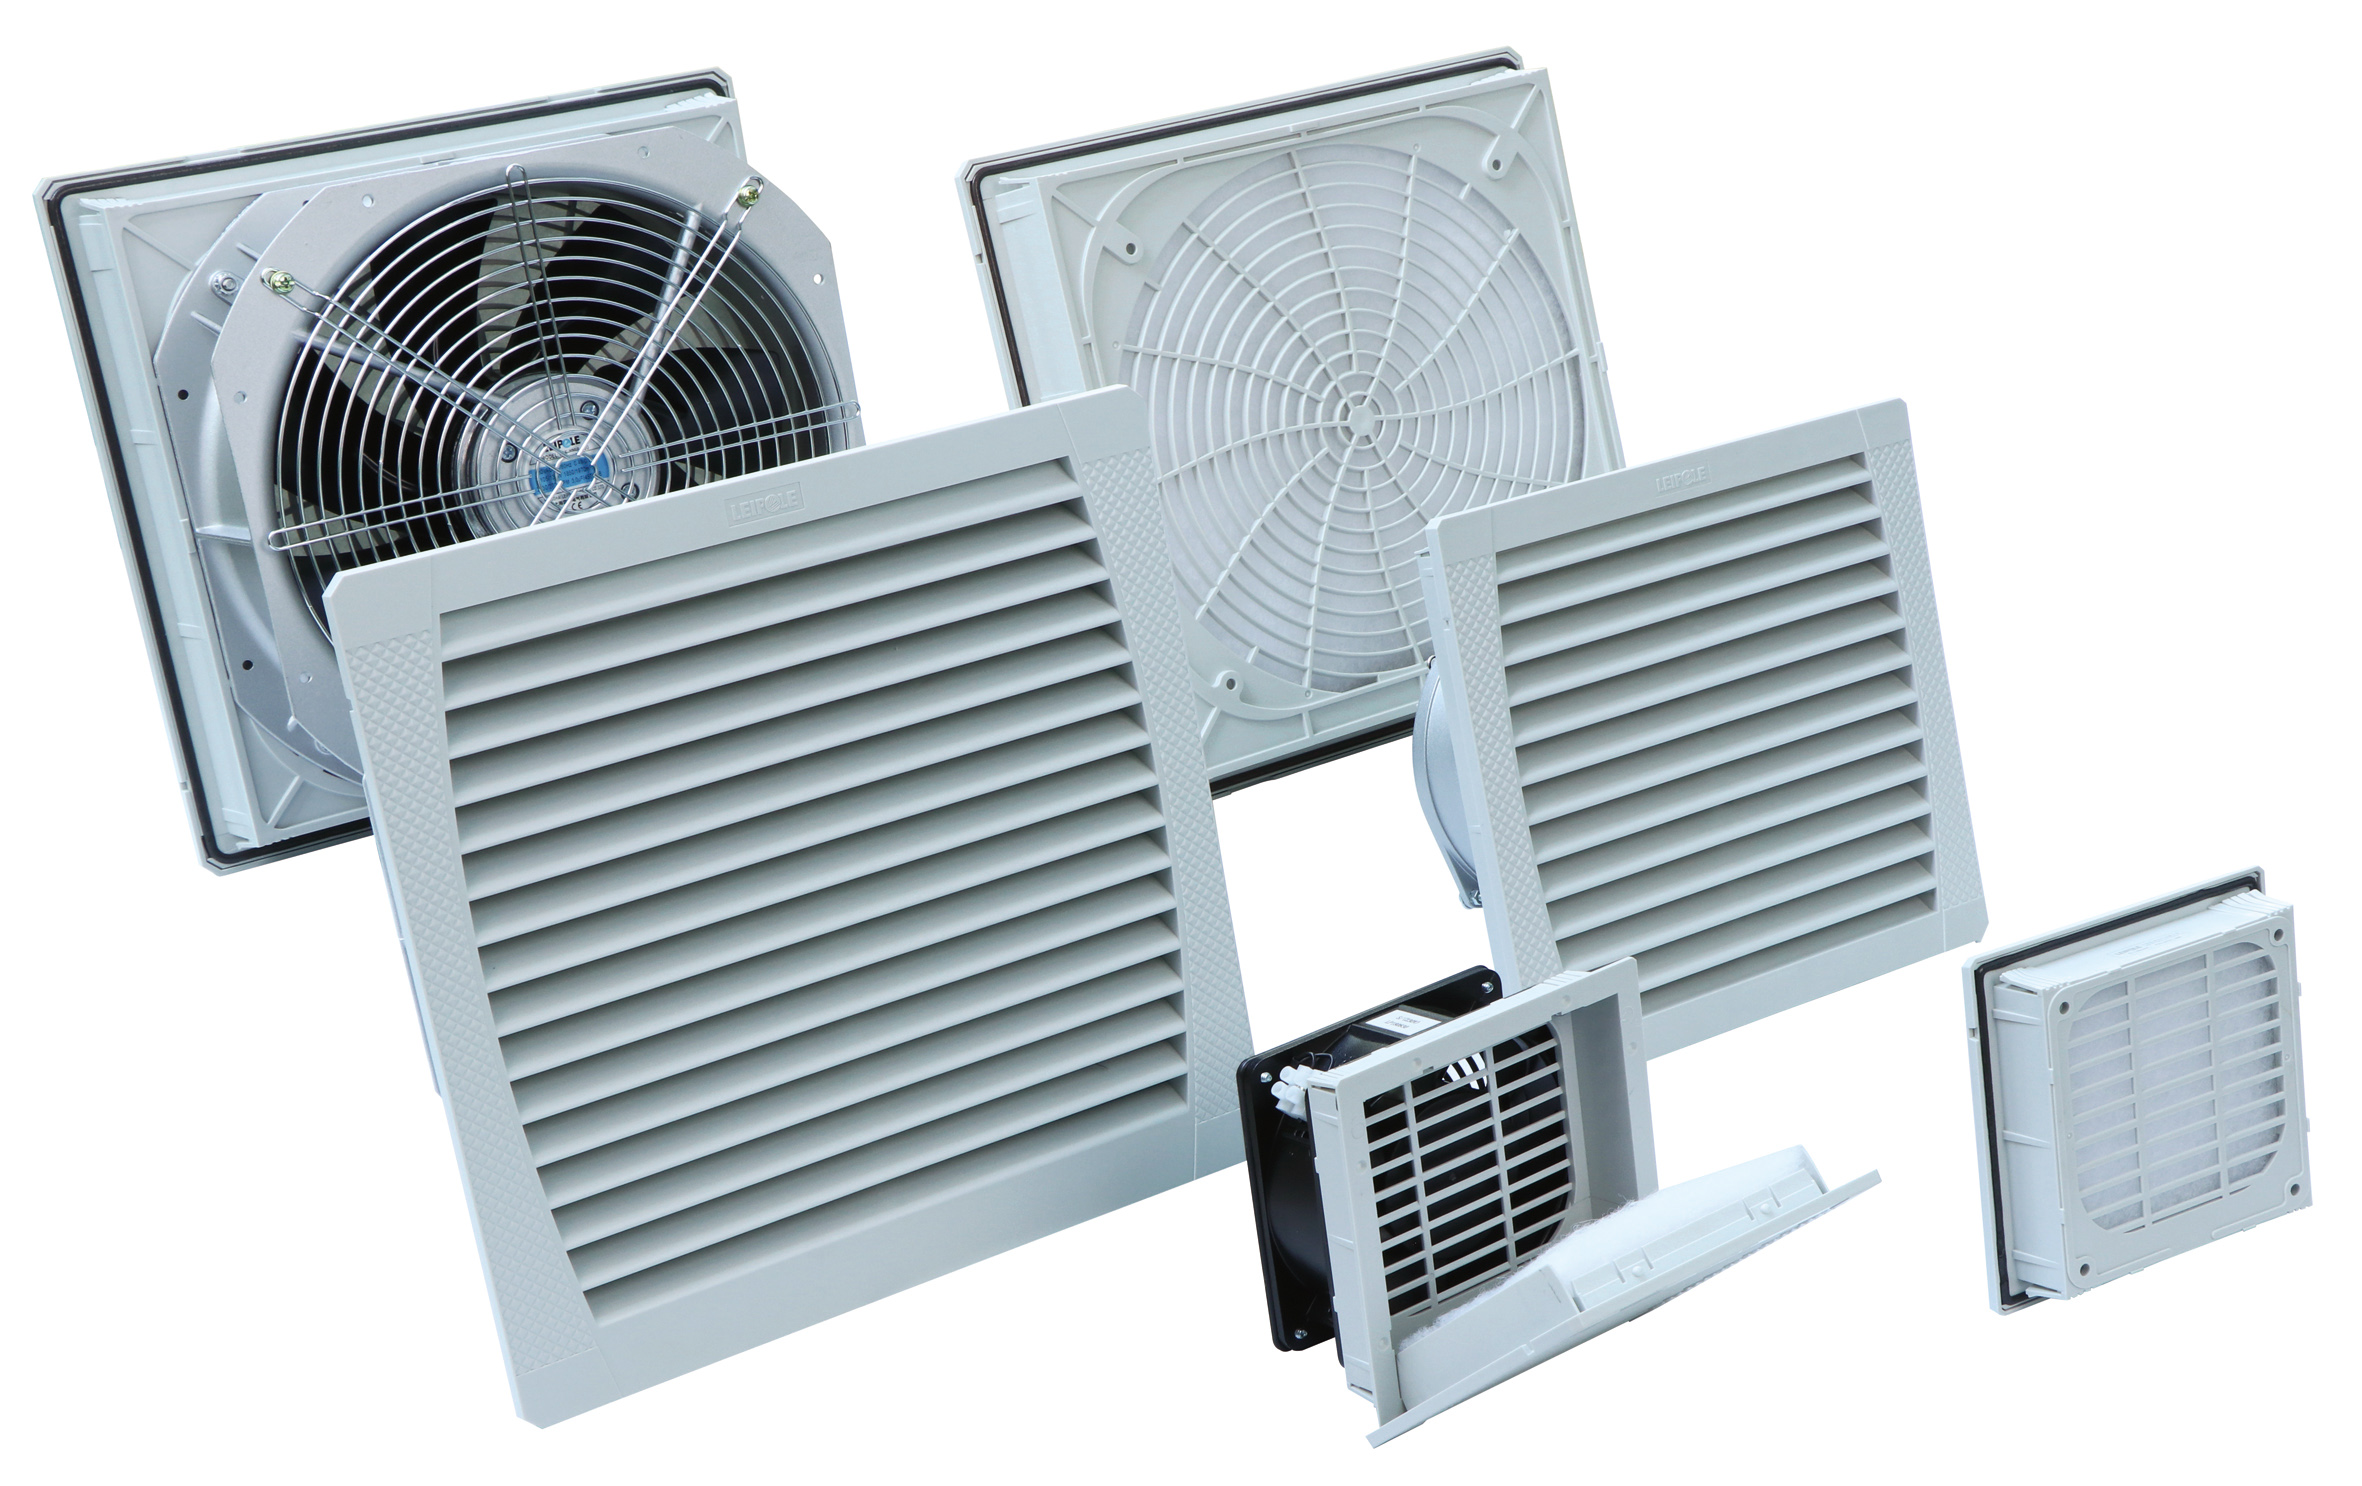 FK5526-D Cabinet 320mm Fan Filter Ventilation with Heat-Resistant Flame